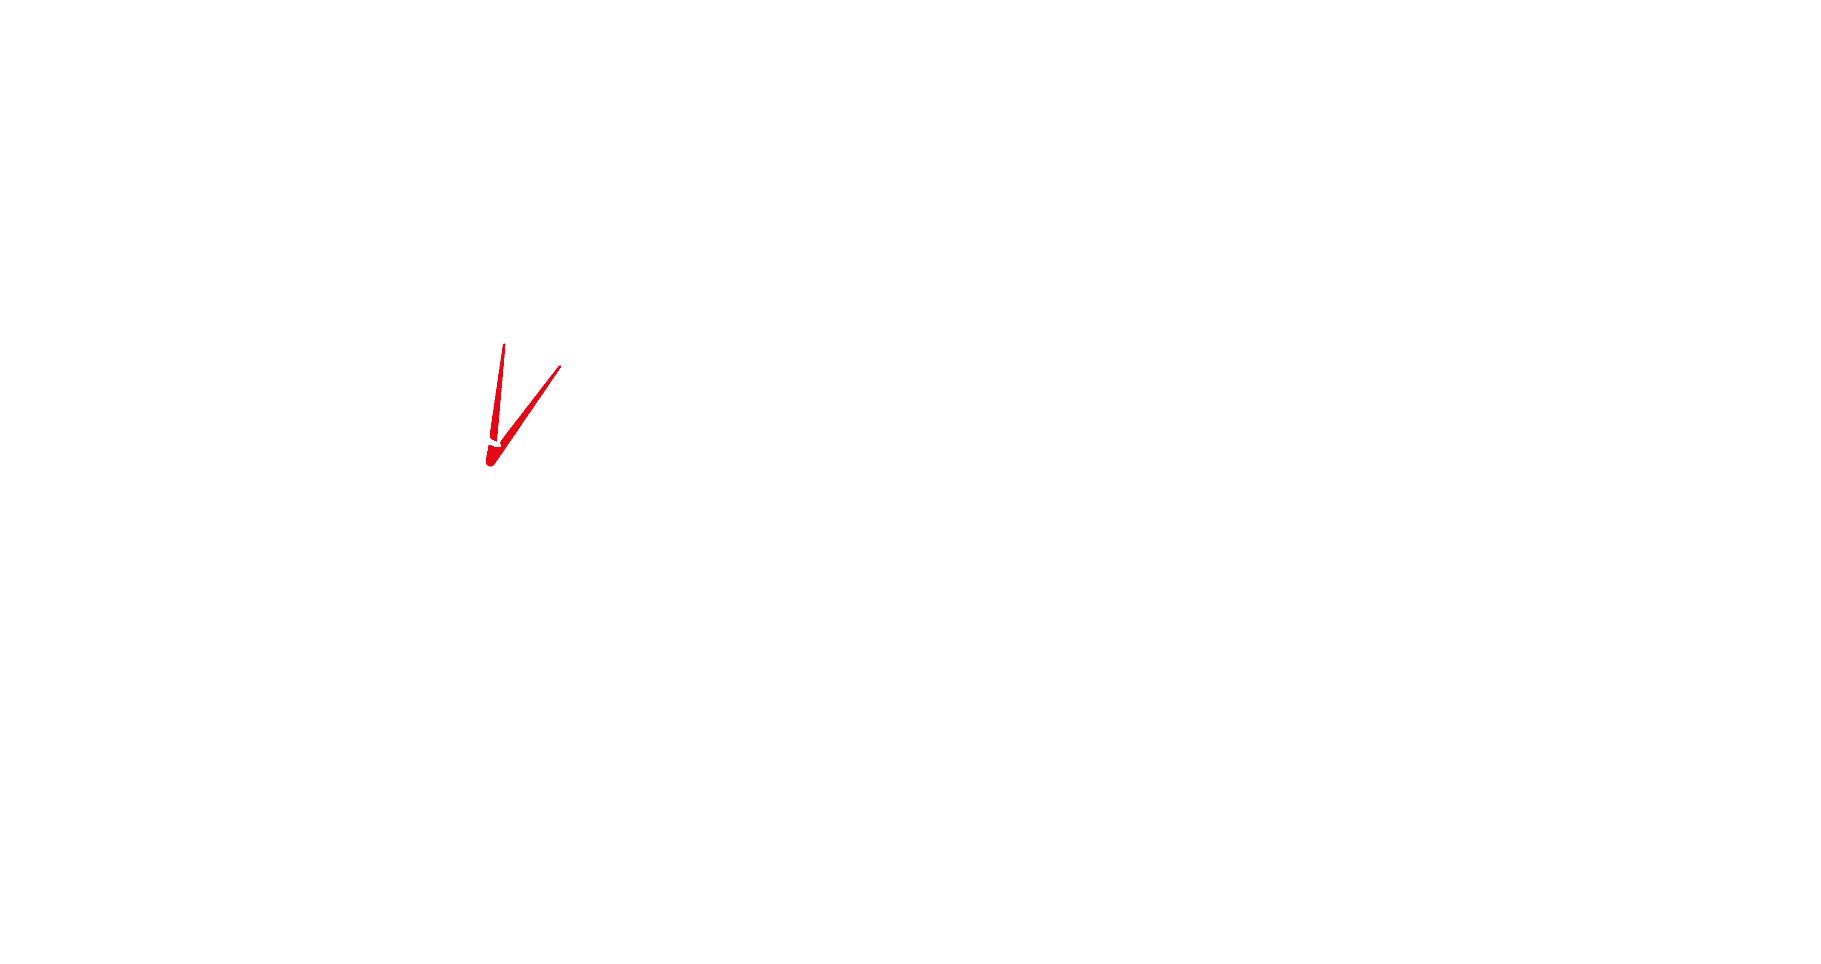 ICAEW Chartered Accountants